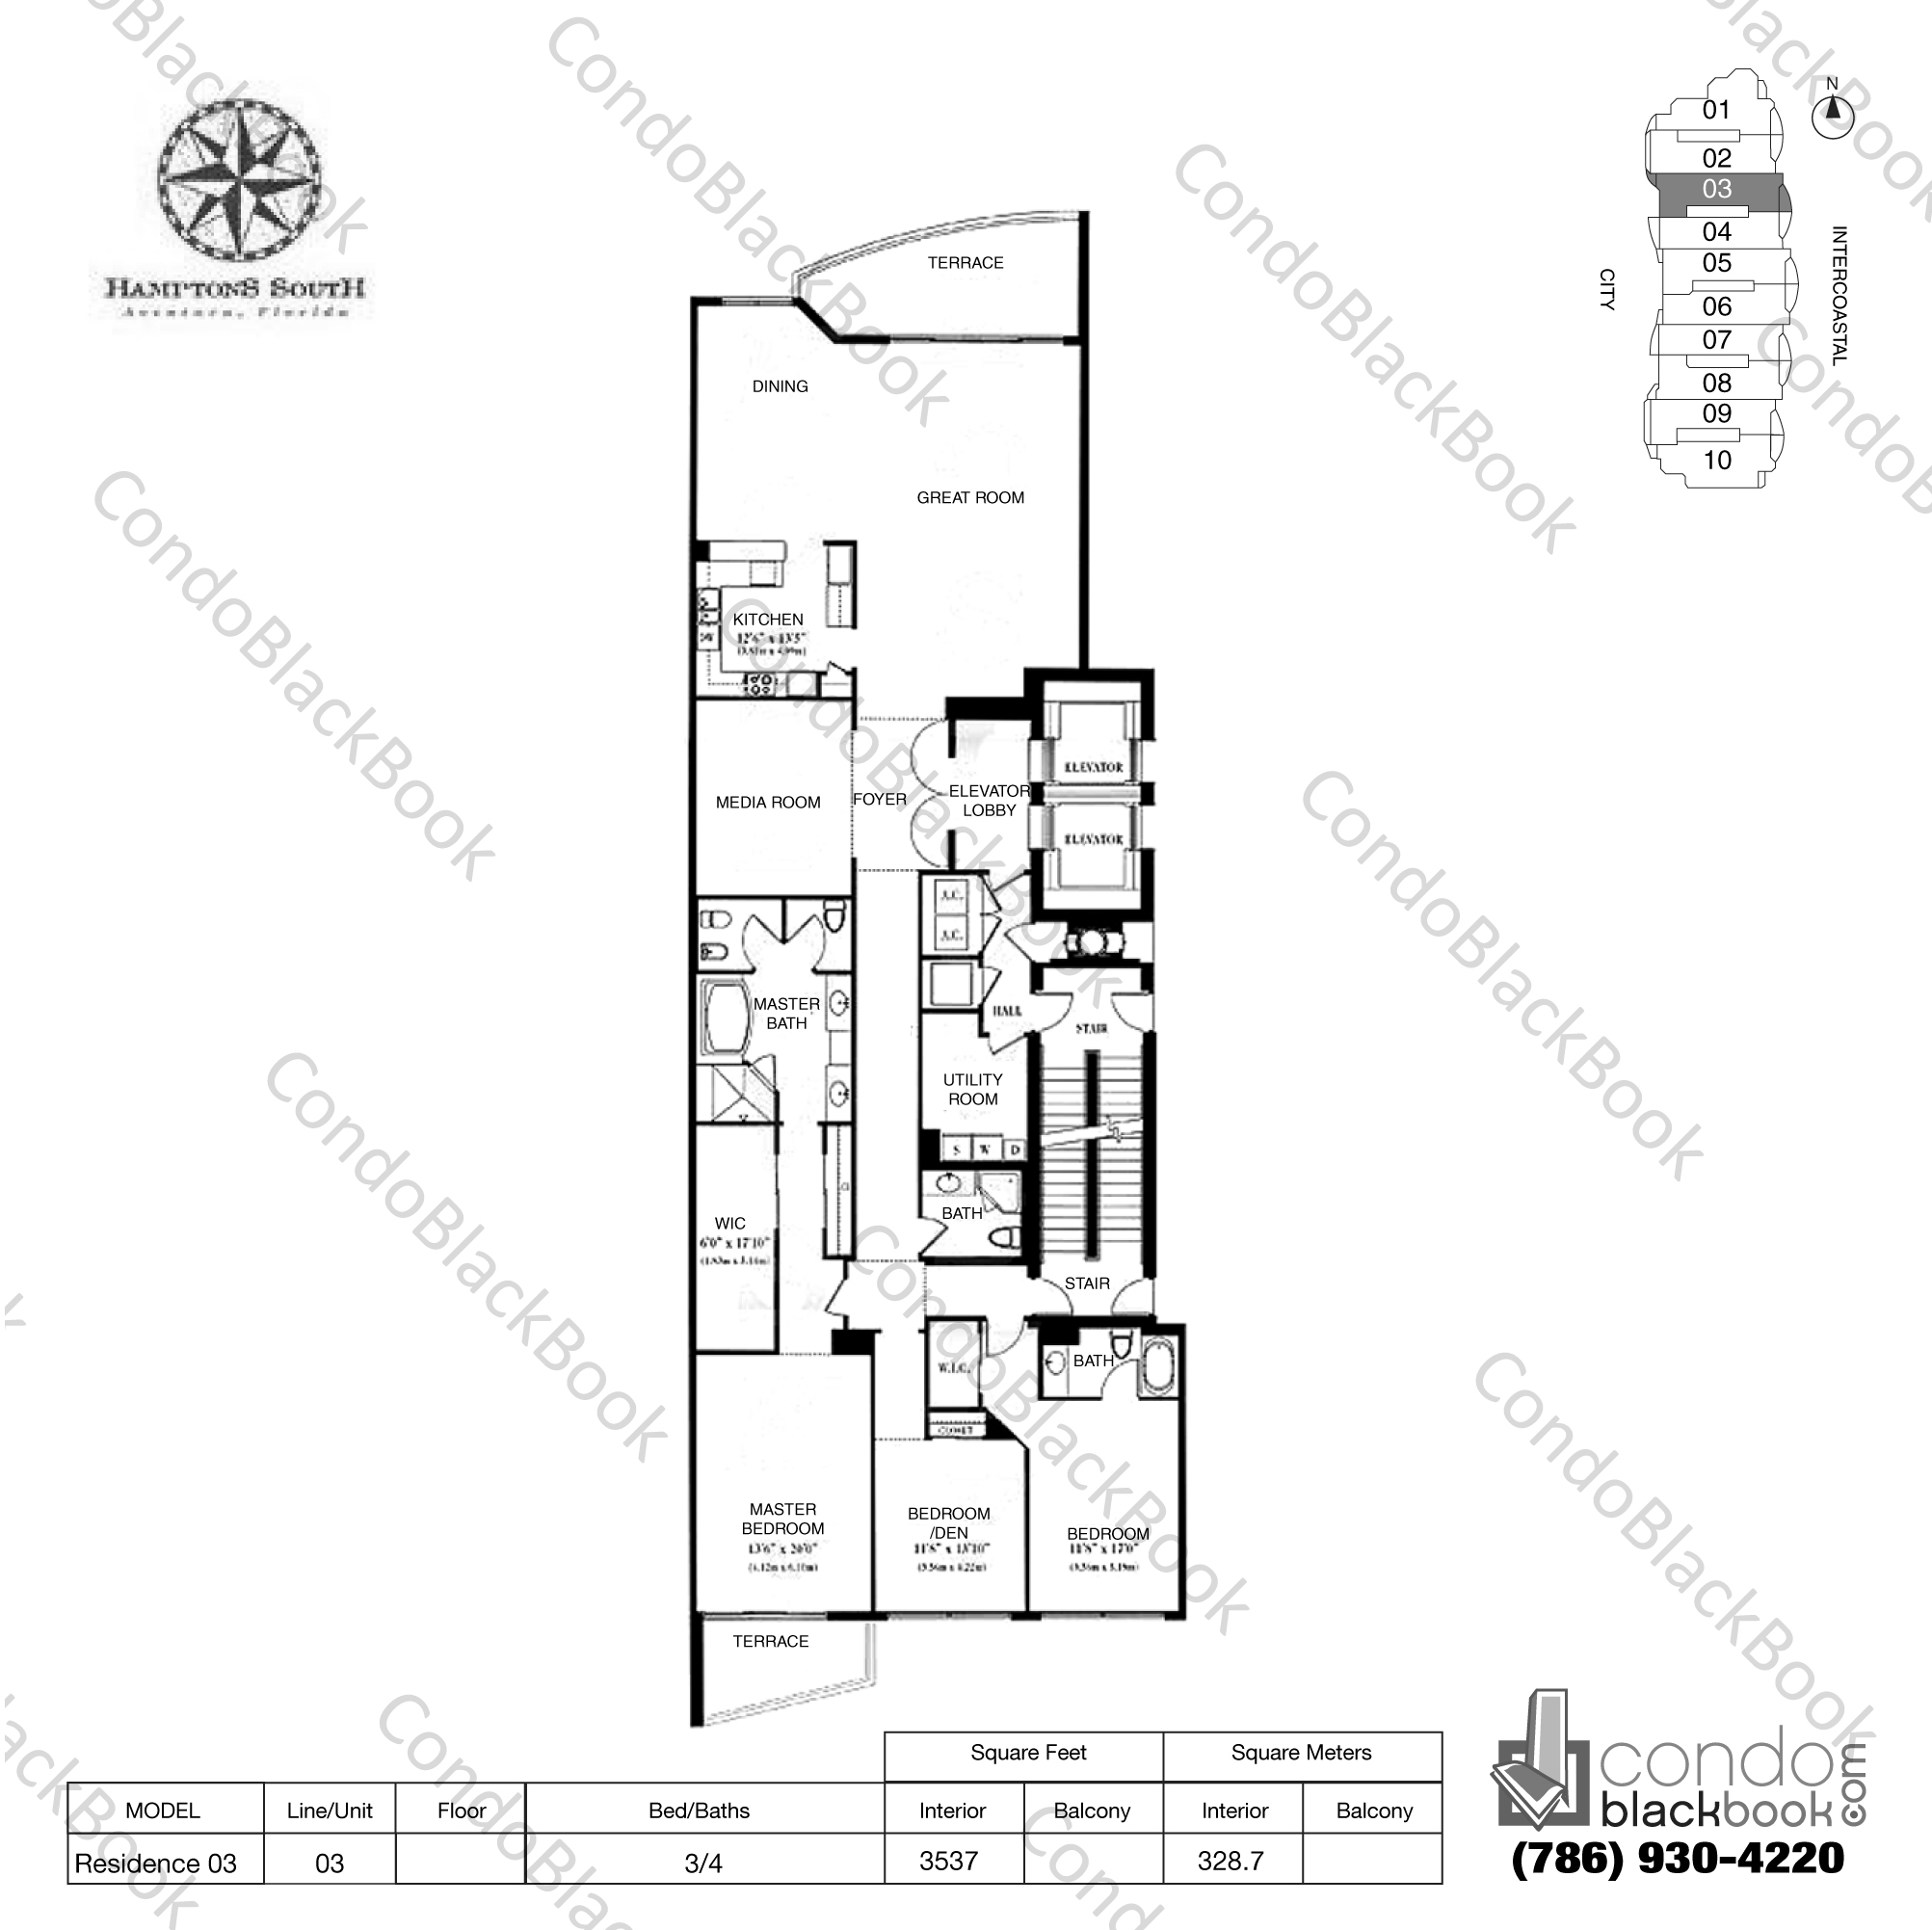 Floor plan for Hamptons South Aventura, model Residence 03, line 03, 3/4 bedrooms, 3537 sq ft